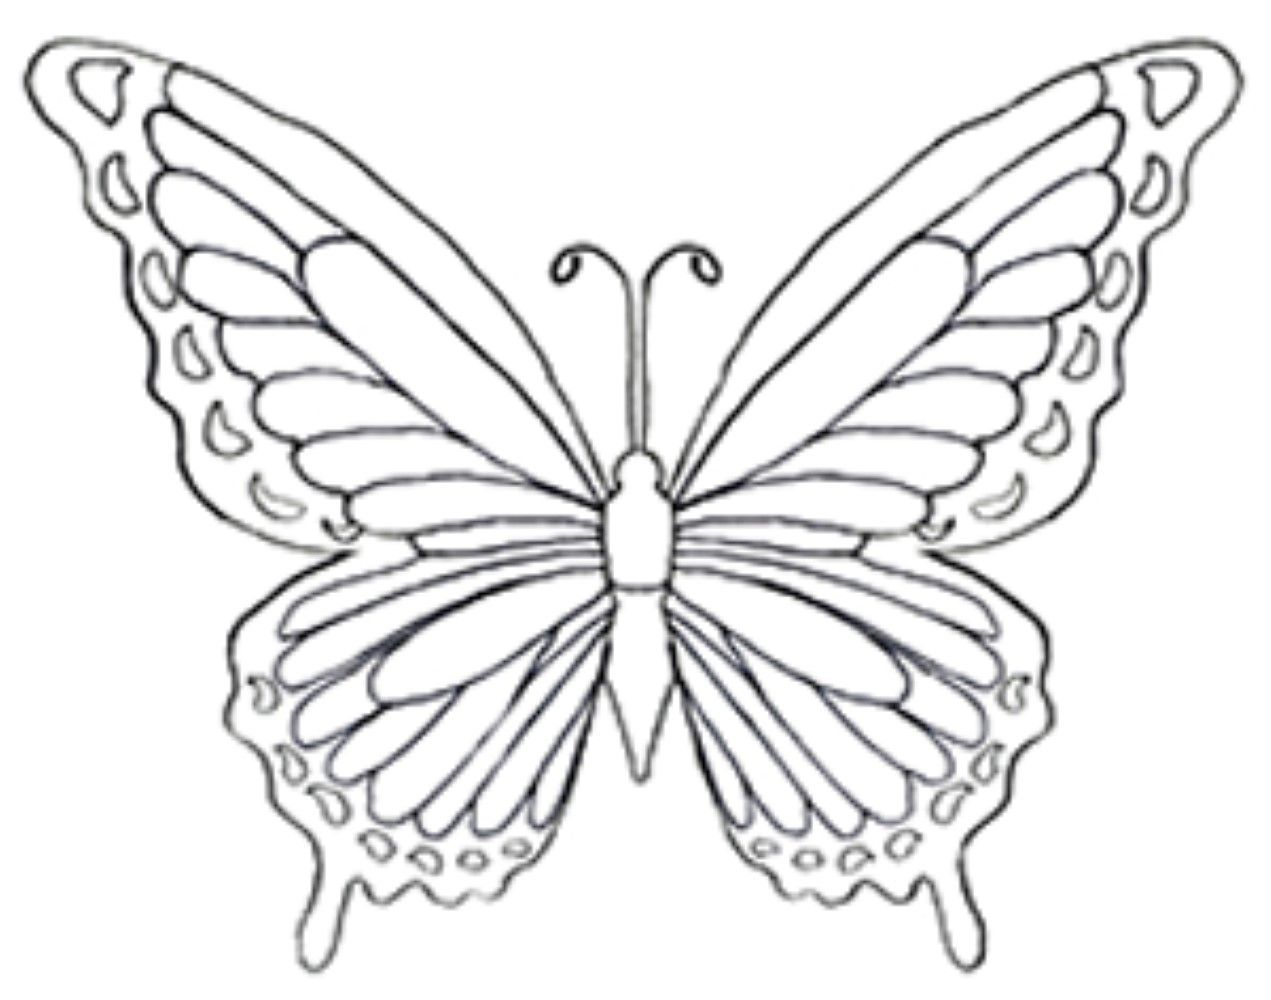 A Coloring Page Of A Butterfly